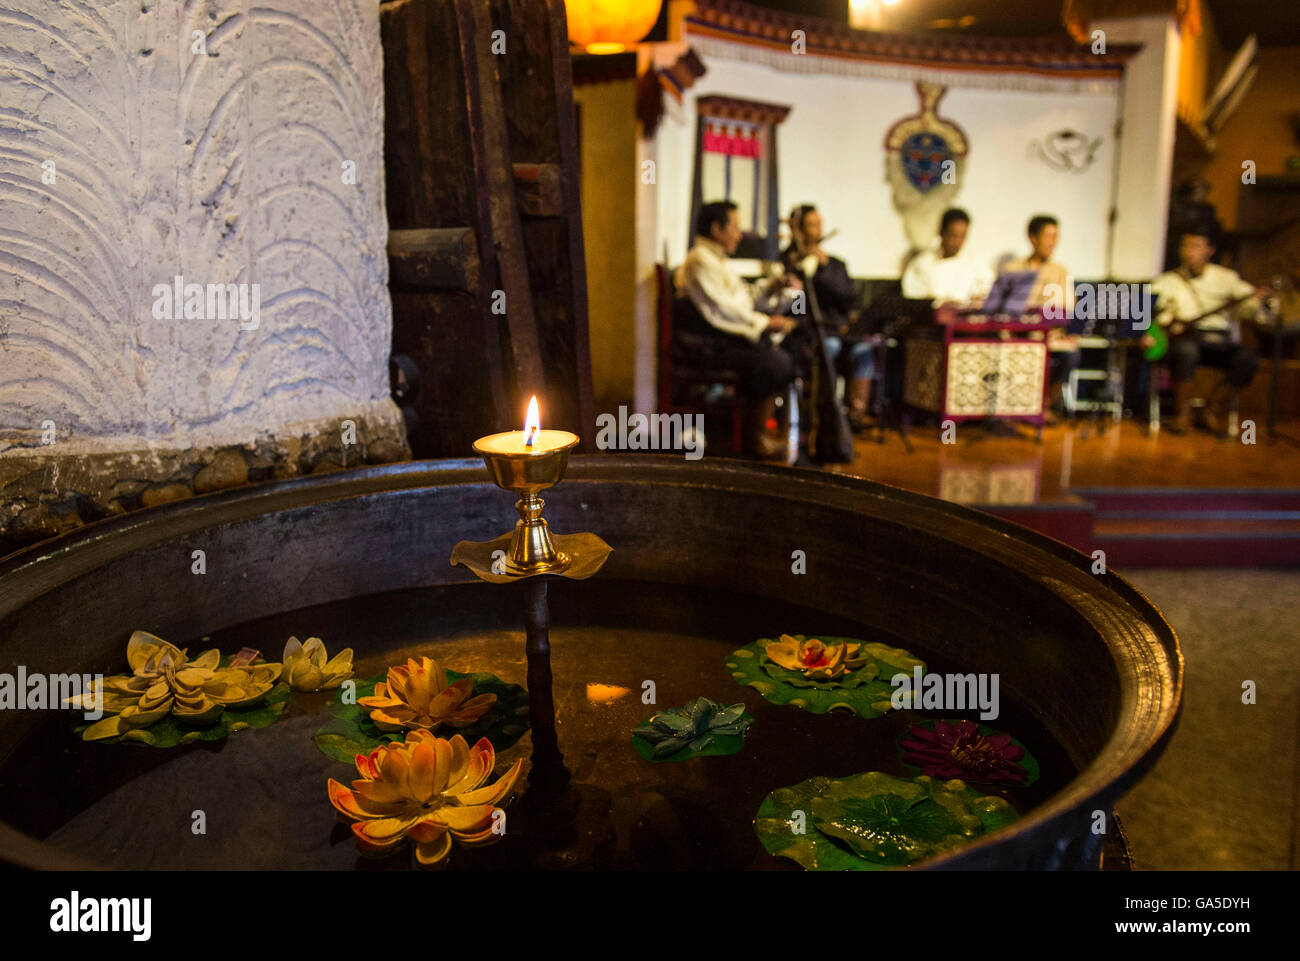 Lhasa. 16th June, 2016. Photo taken on June 16, 2016 shows the inside view of a restaurant in Xigaze, the second - Stock Image